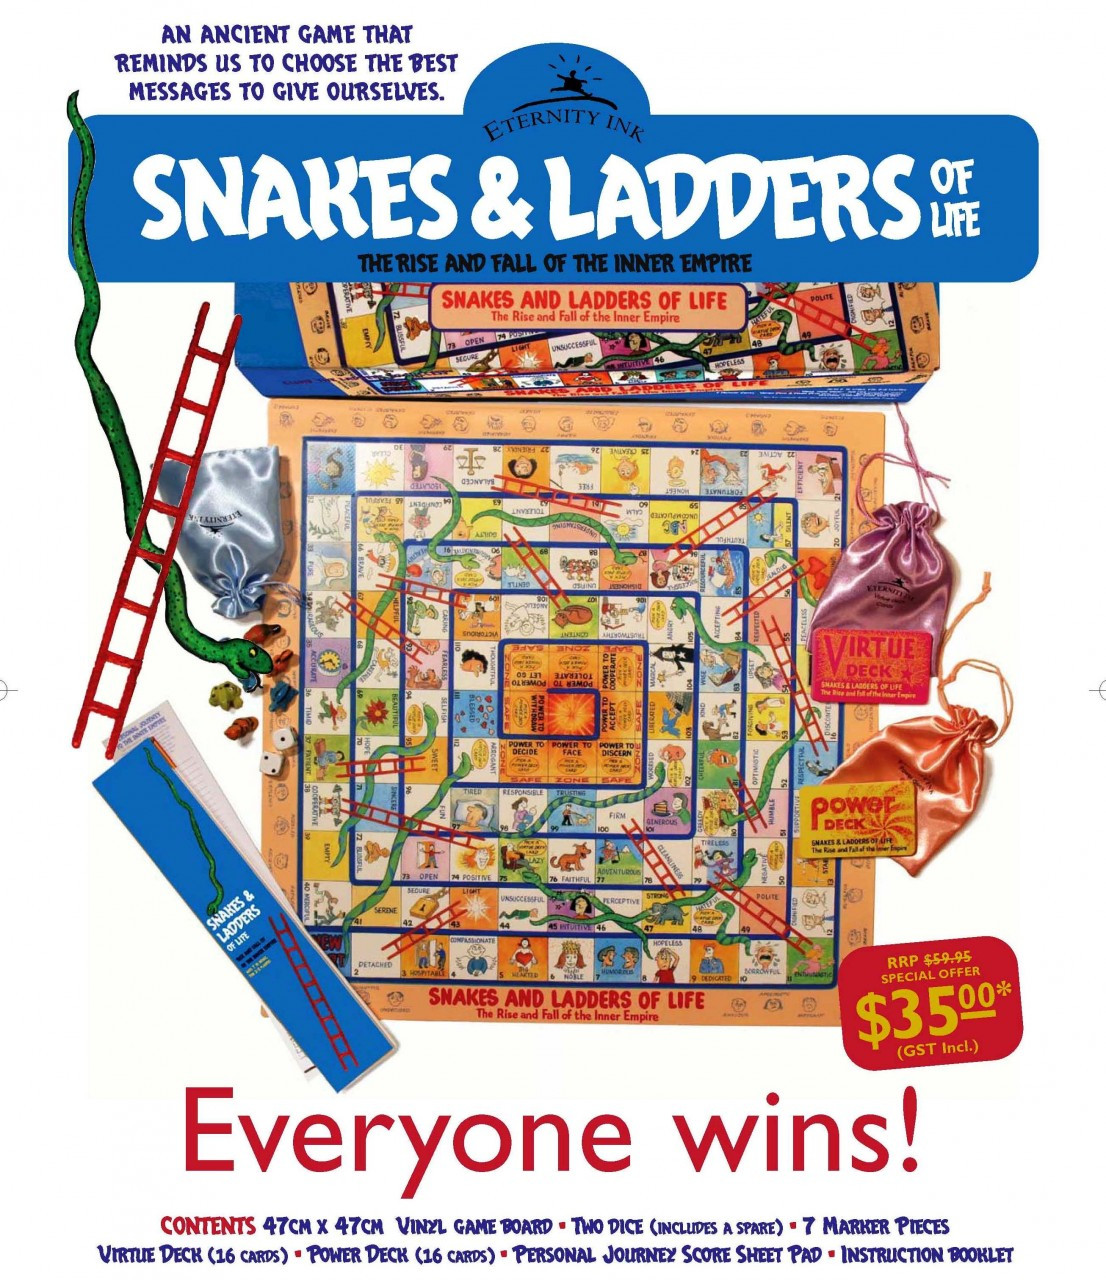 Snakes and ladders of life education tool kids games education1106